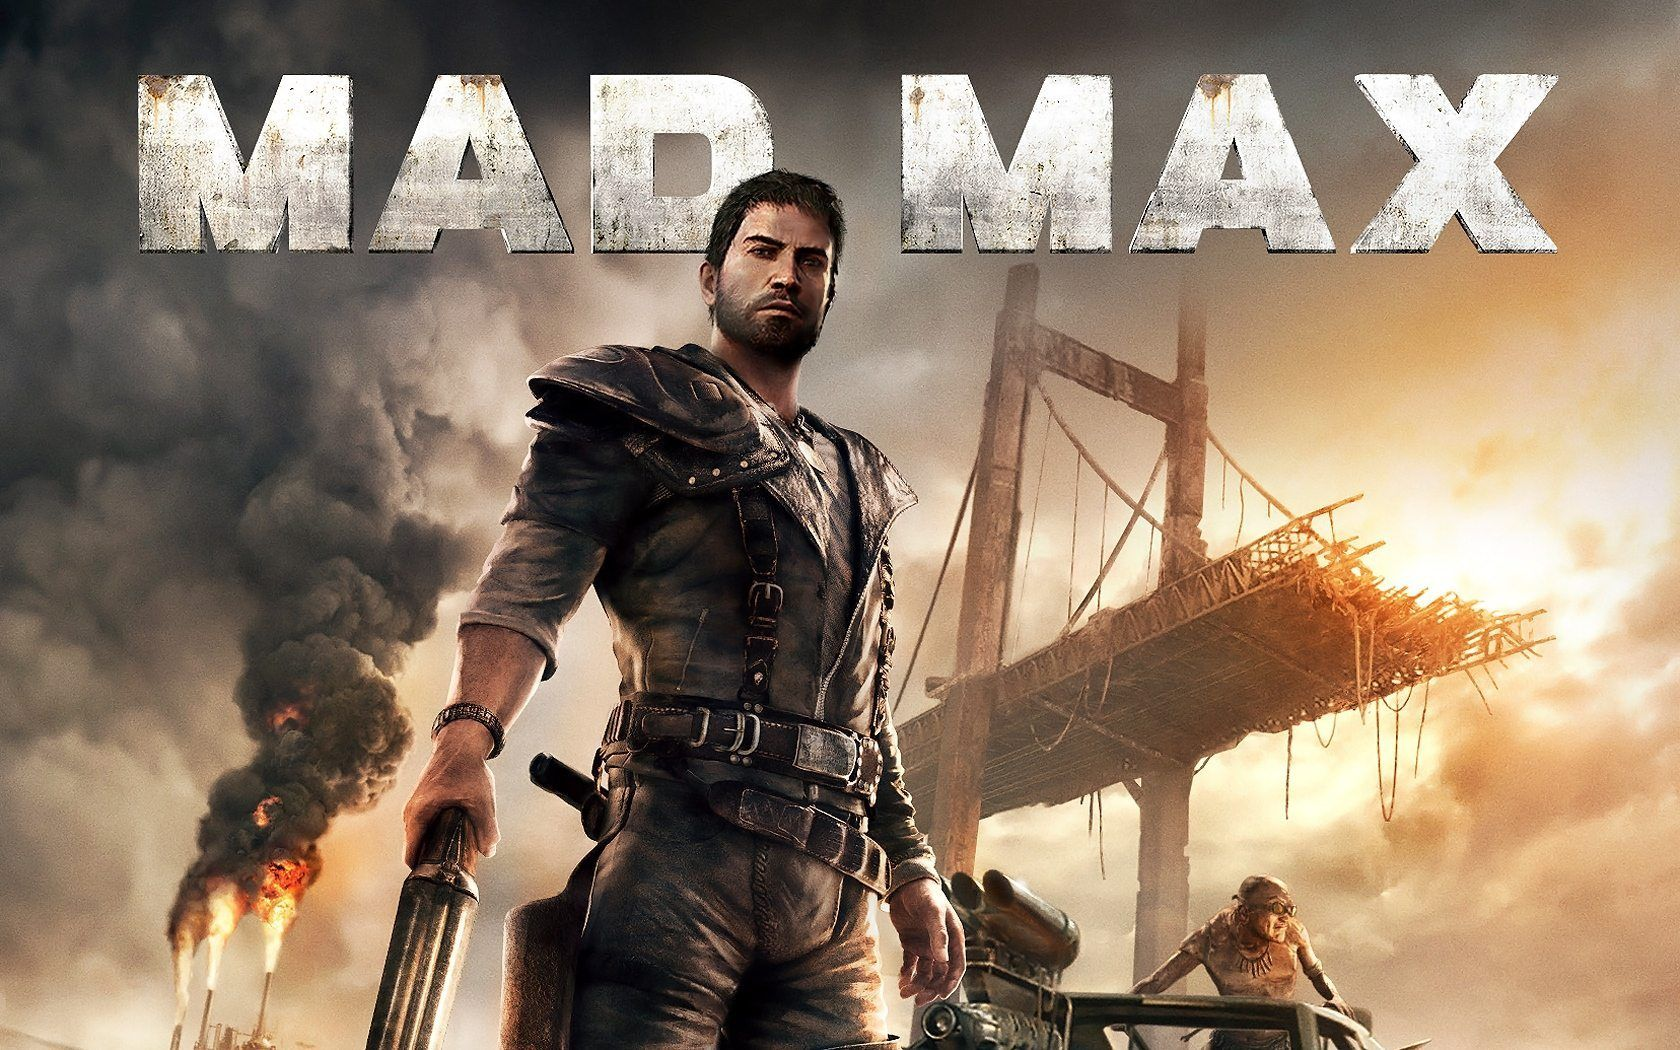 Mad Max is an actionadventure video game set in an open